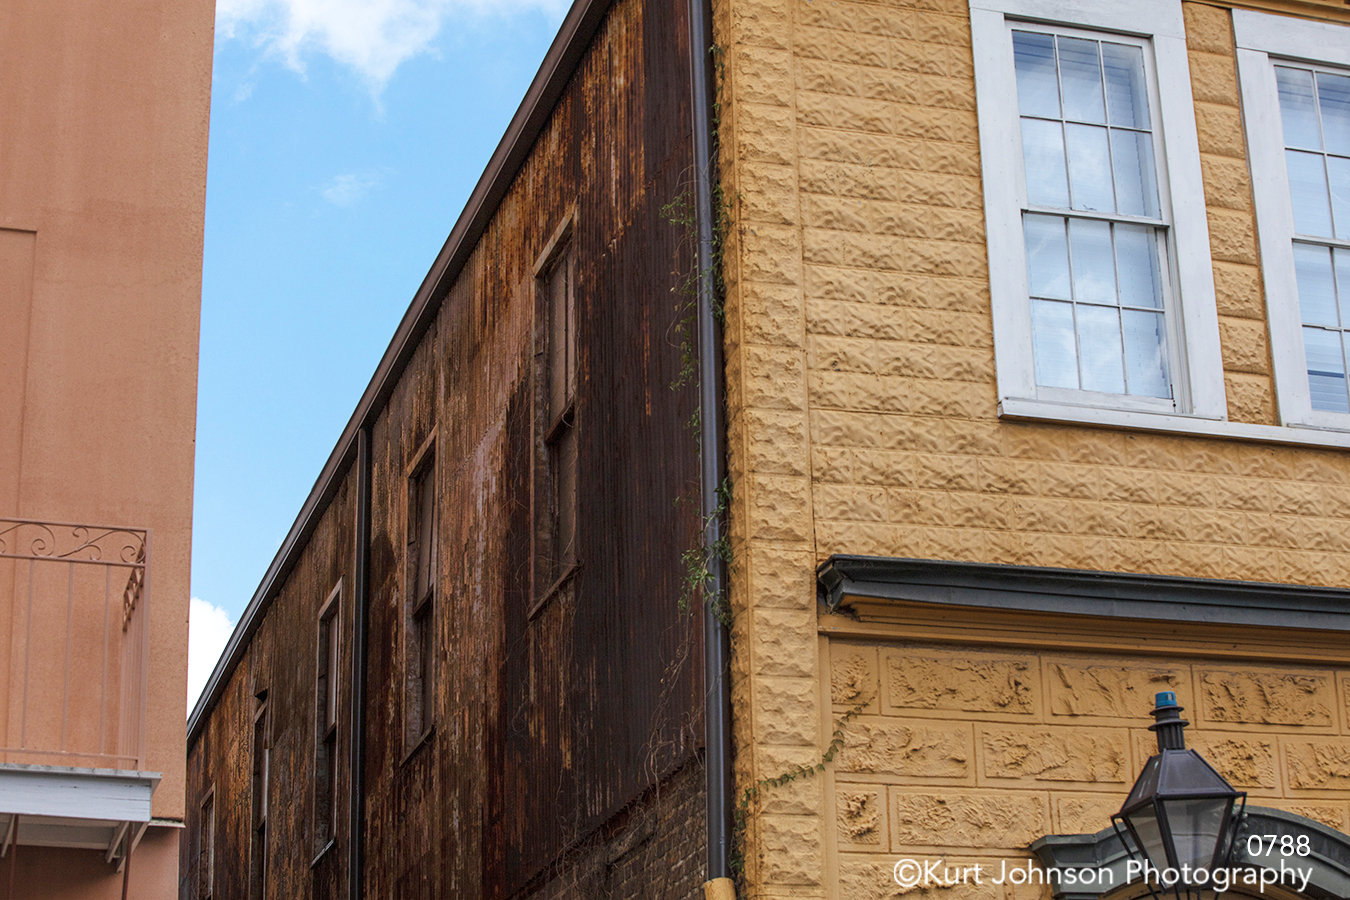 brown tan brick building downtown city blue sky clouds architecture historical south southeast